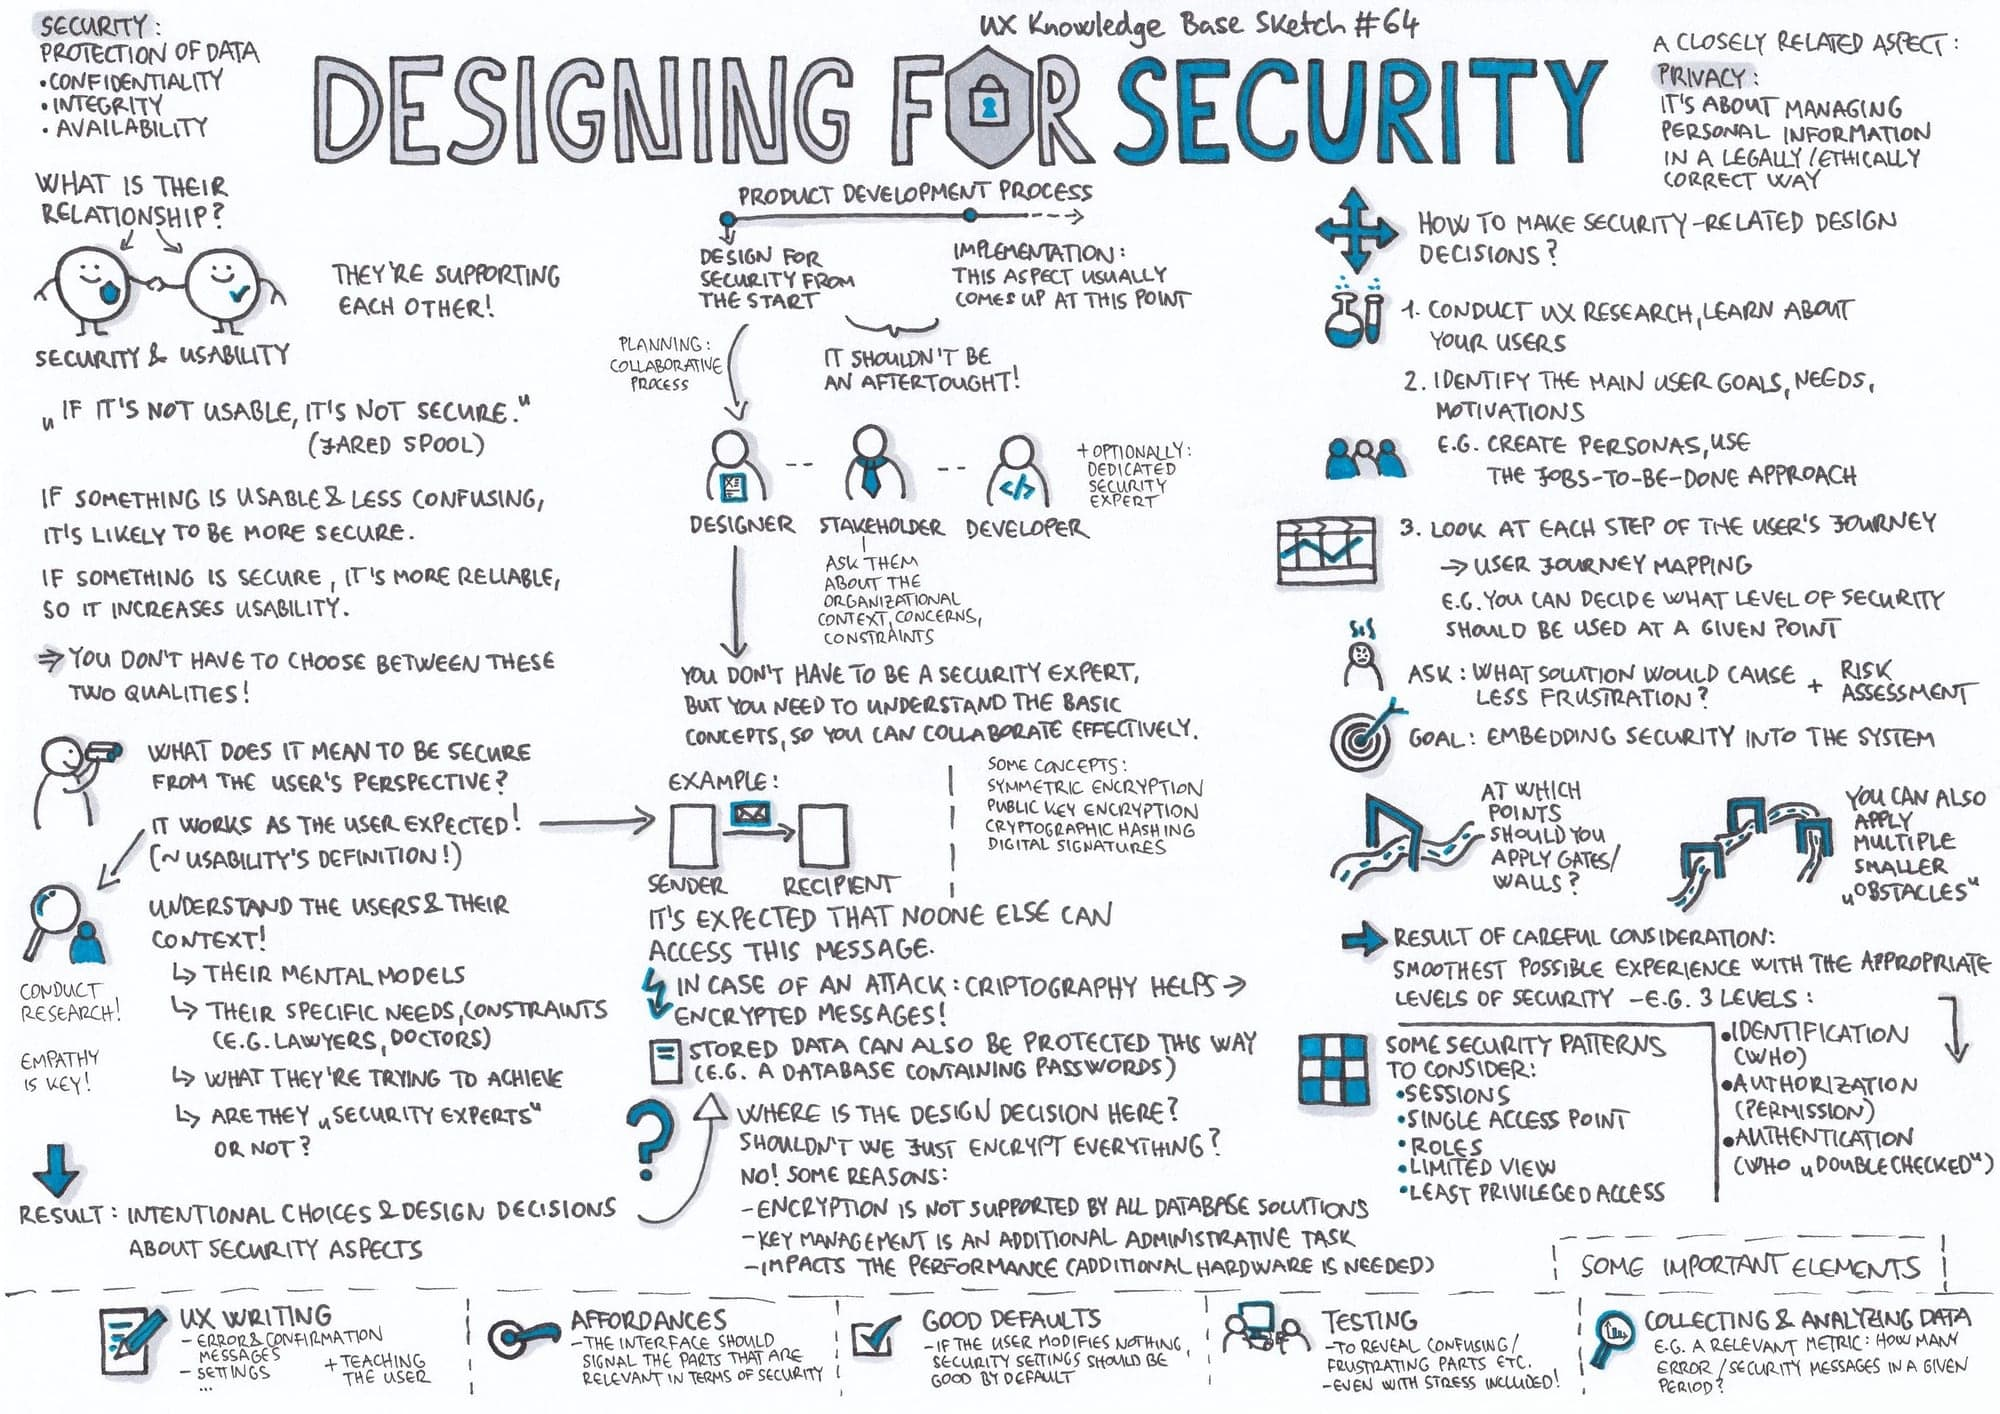 Designing for Security. Mindmap.